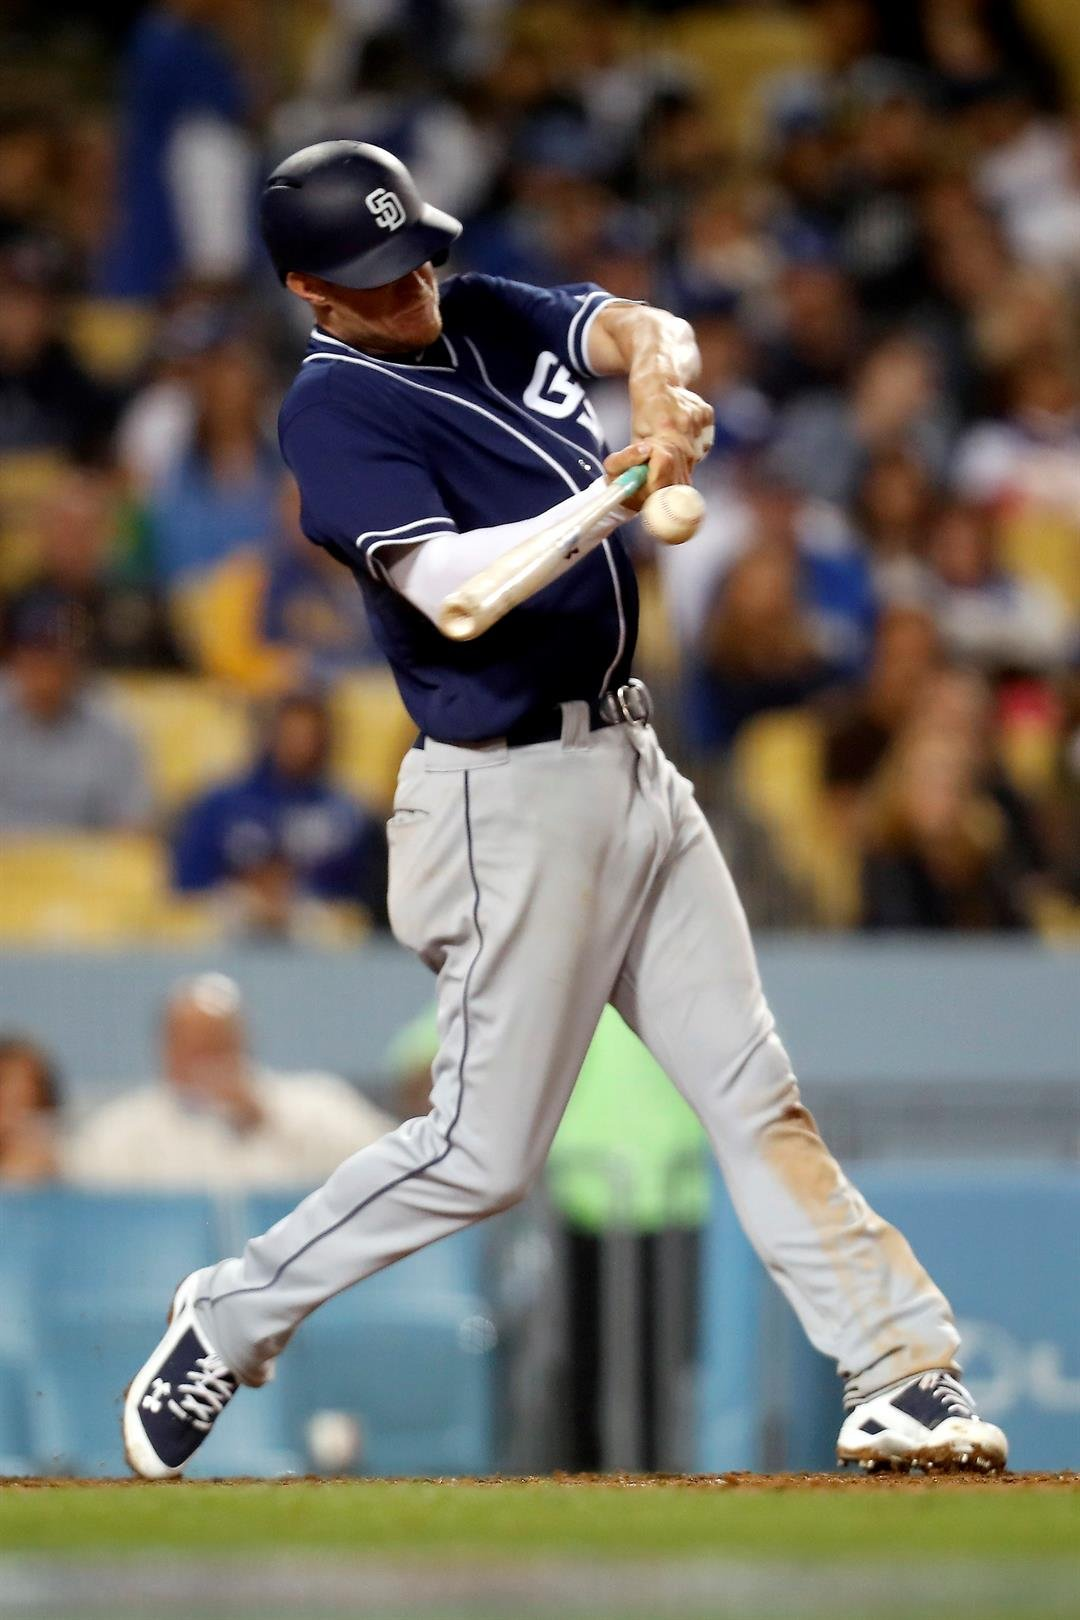 San Diego Padres' Wil Myers hits an RBI single against the Los Angeles Dodgers during the eighth inning of a baseball game, Tuesday, April 4, 2017, in Los Angeles. (AP Photo/Ryan Kang)